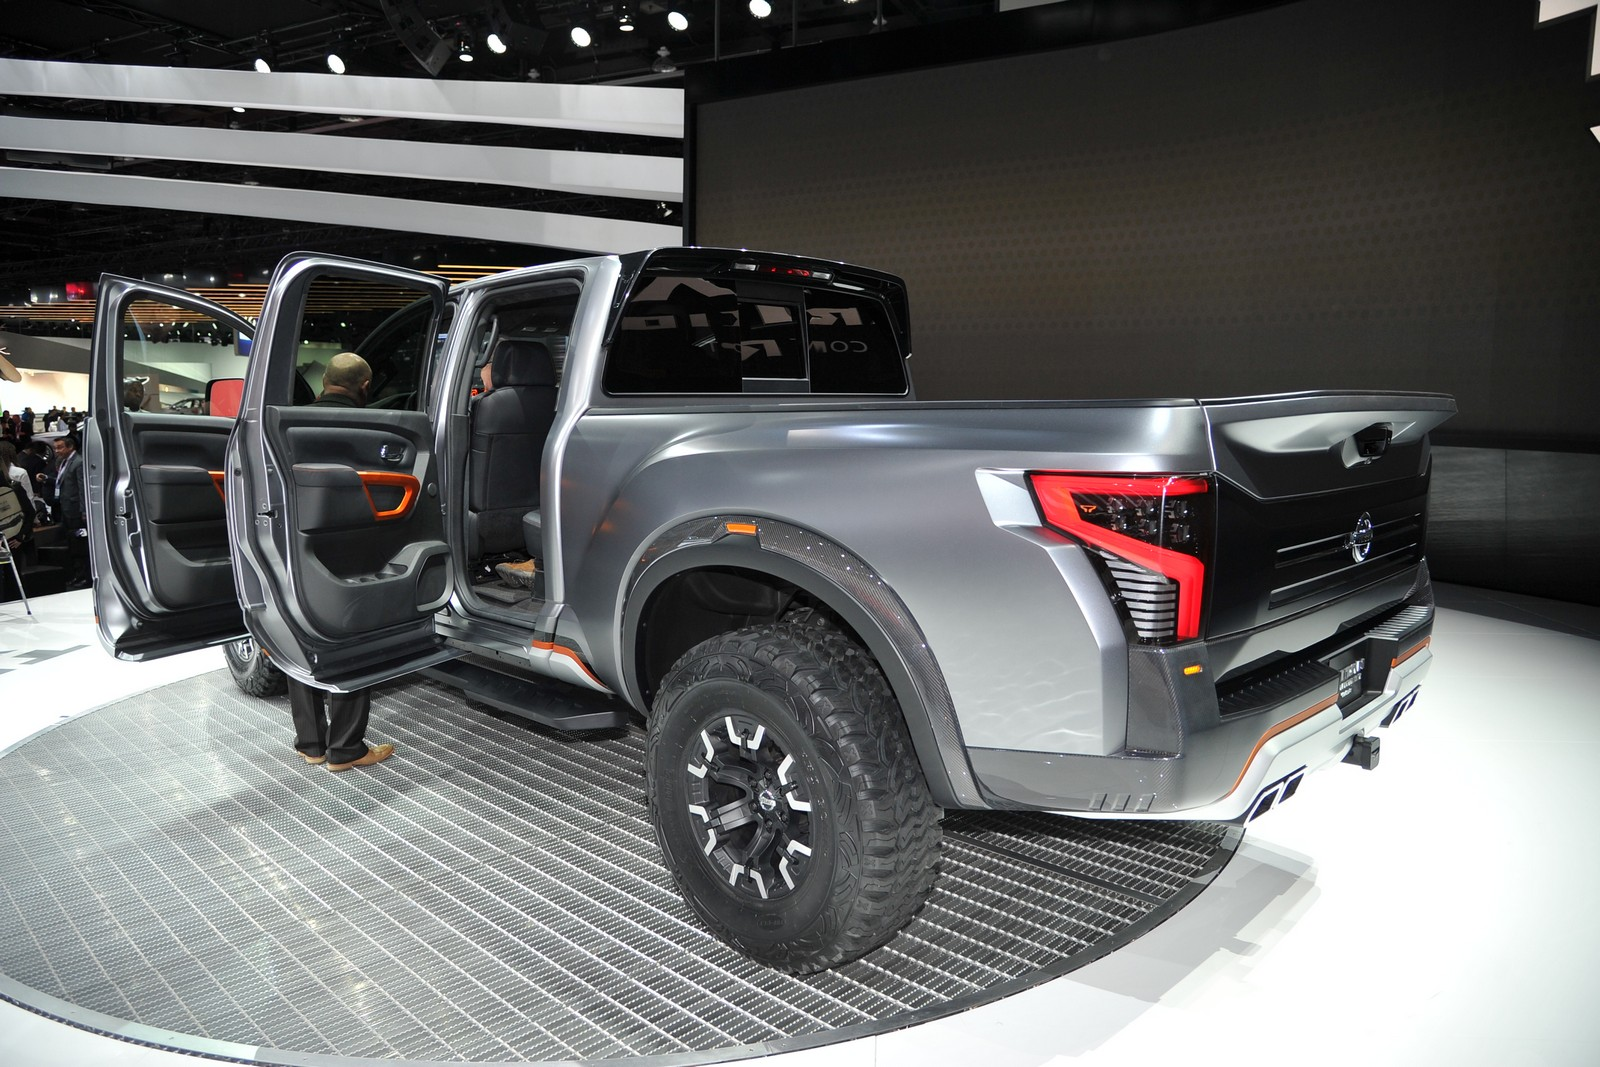 Nissan Titan photo 159679